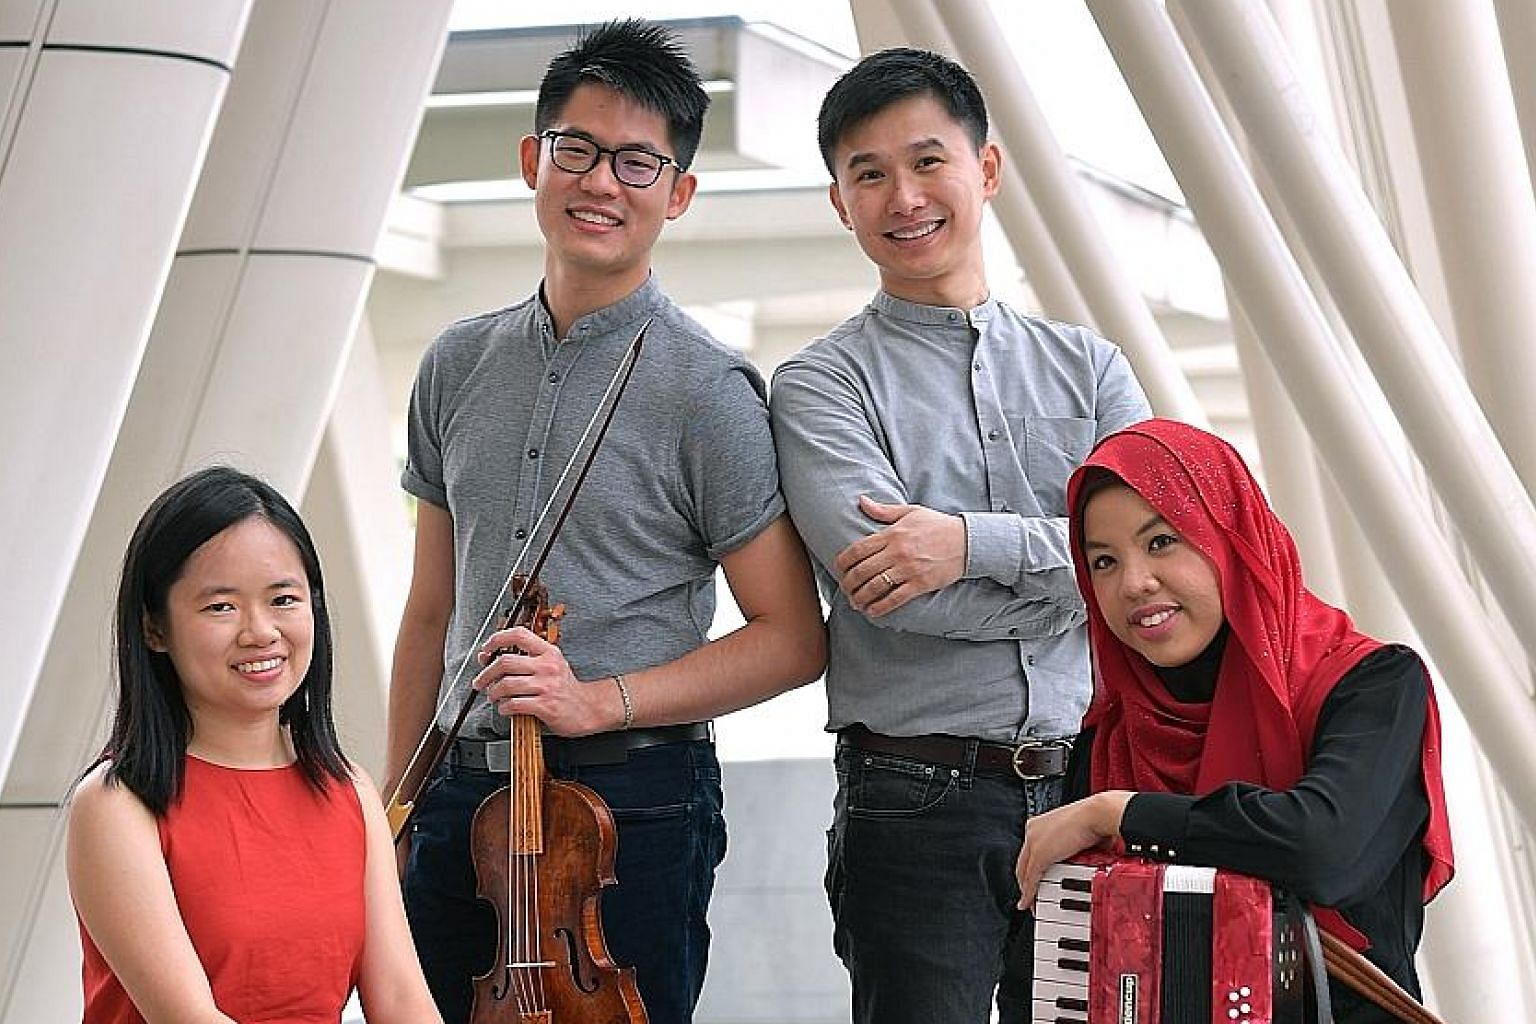 Alumni of the Yong Siew Toh Conservatory, (from left) Abigail Sin, Alan Choo, Chen Zhangyi and Syafiqah 'Adha Sallehin, who will perform at the Voyage: And Beyond music festival.